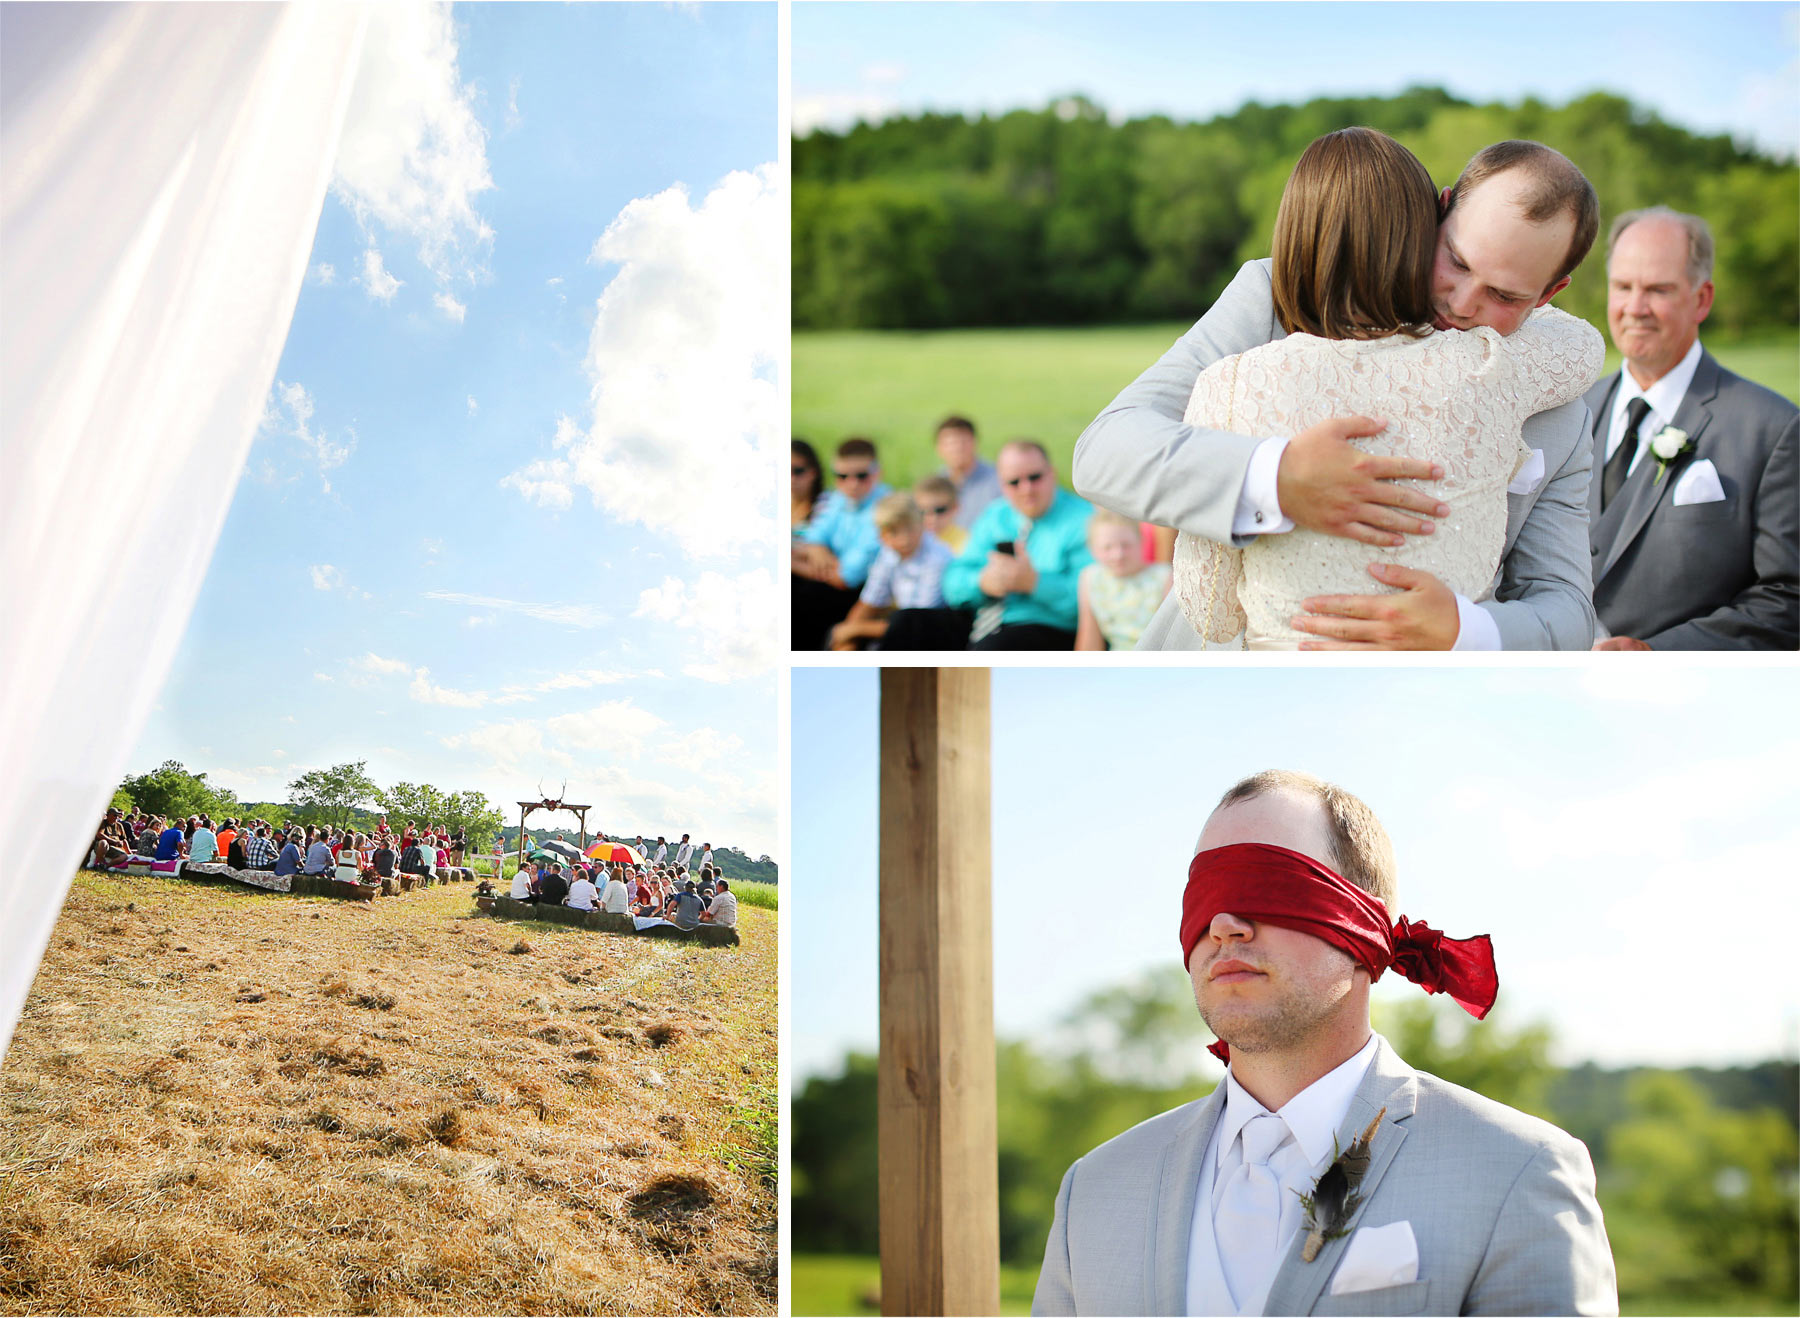 14-South-Haven-Minnesota-Wedding-Photographer-by-Andrew-Vick-Photography-Summer-Tomala-Farm-Ceremony-Groom-Parents-Blidefold-Renee-and-Bobb.jpg